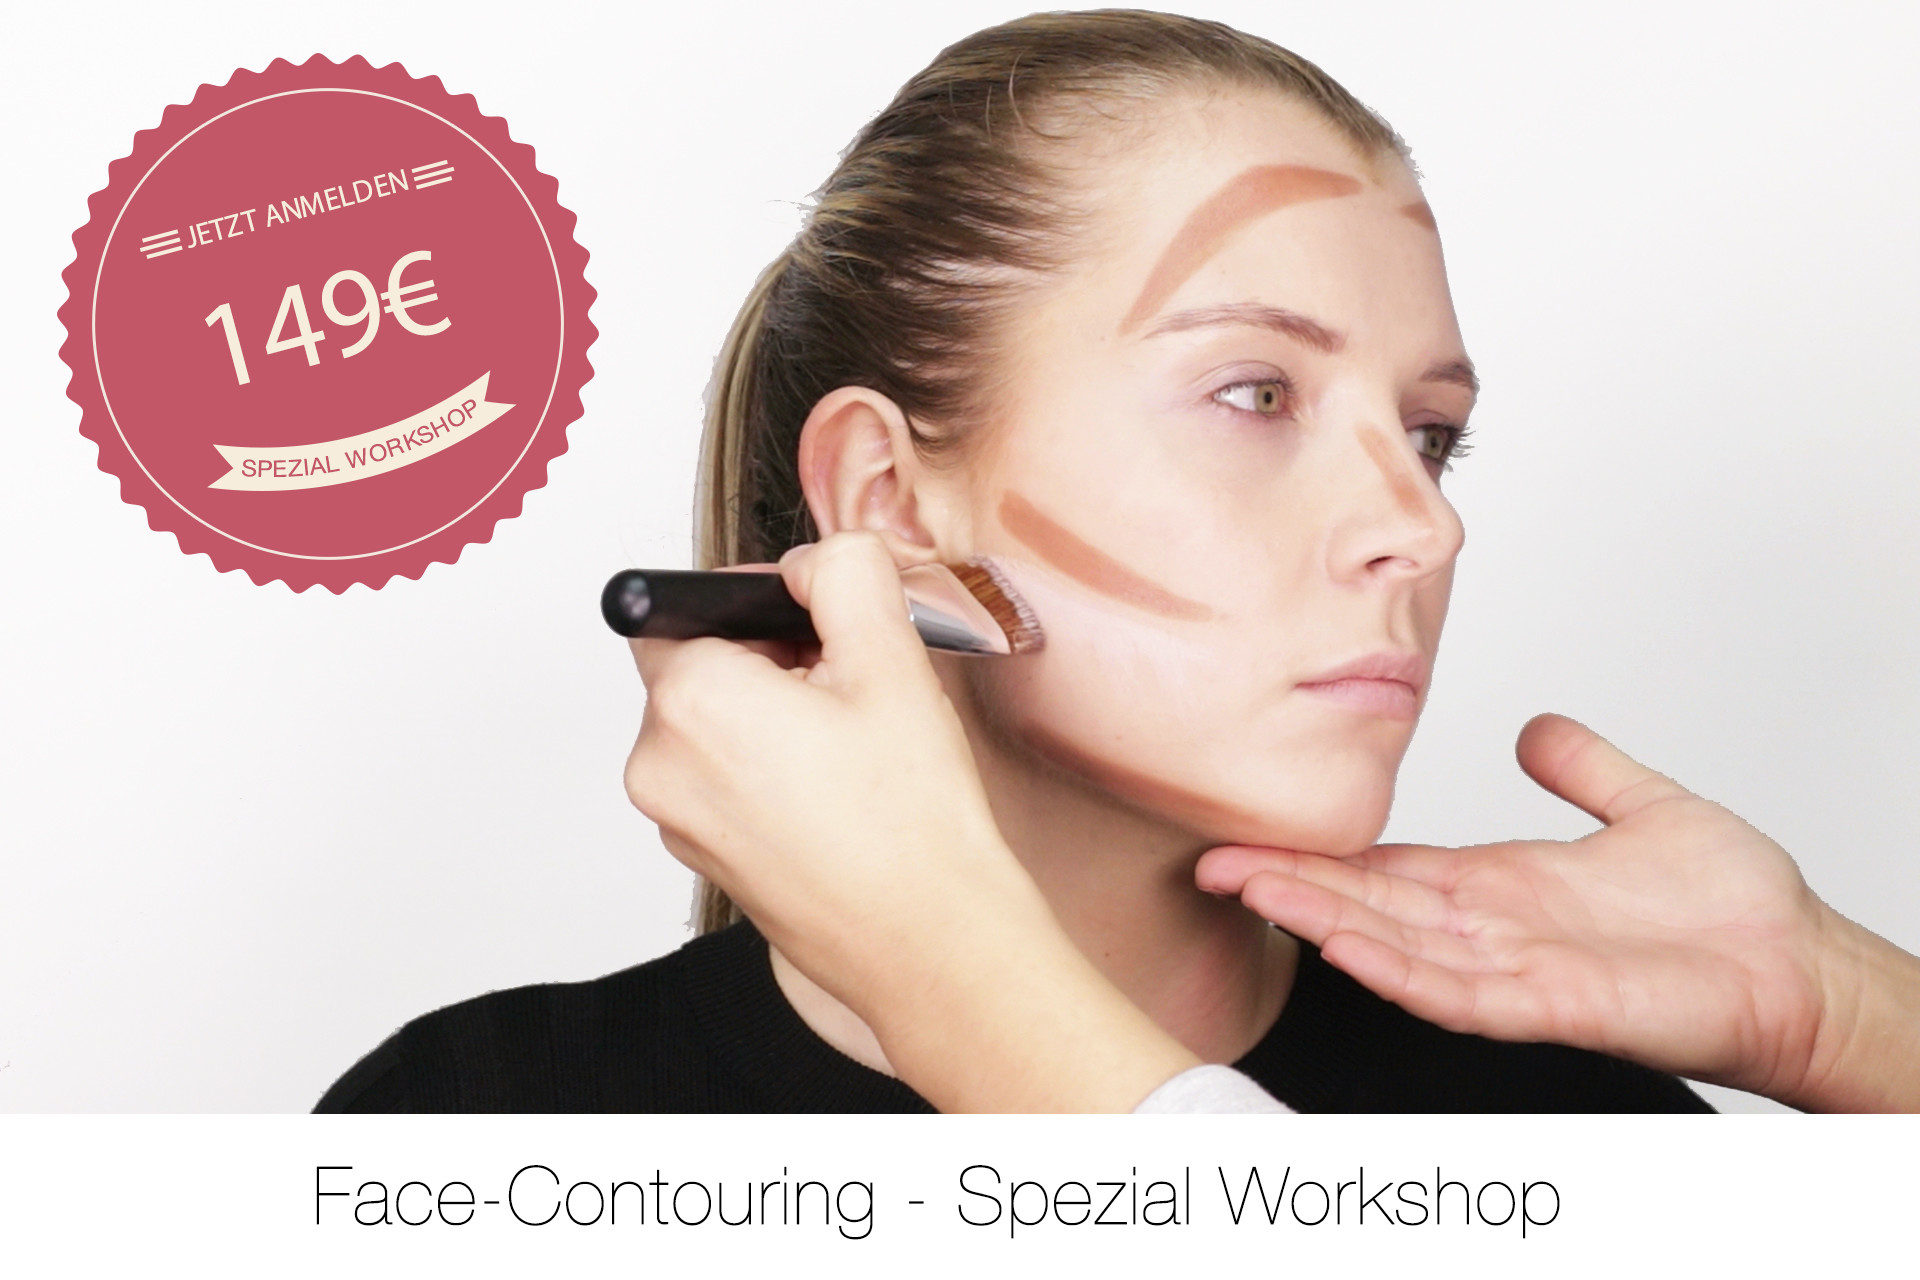 Face-Contouring Spezial Workshop